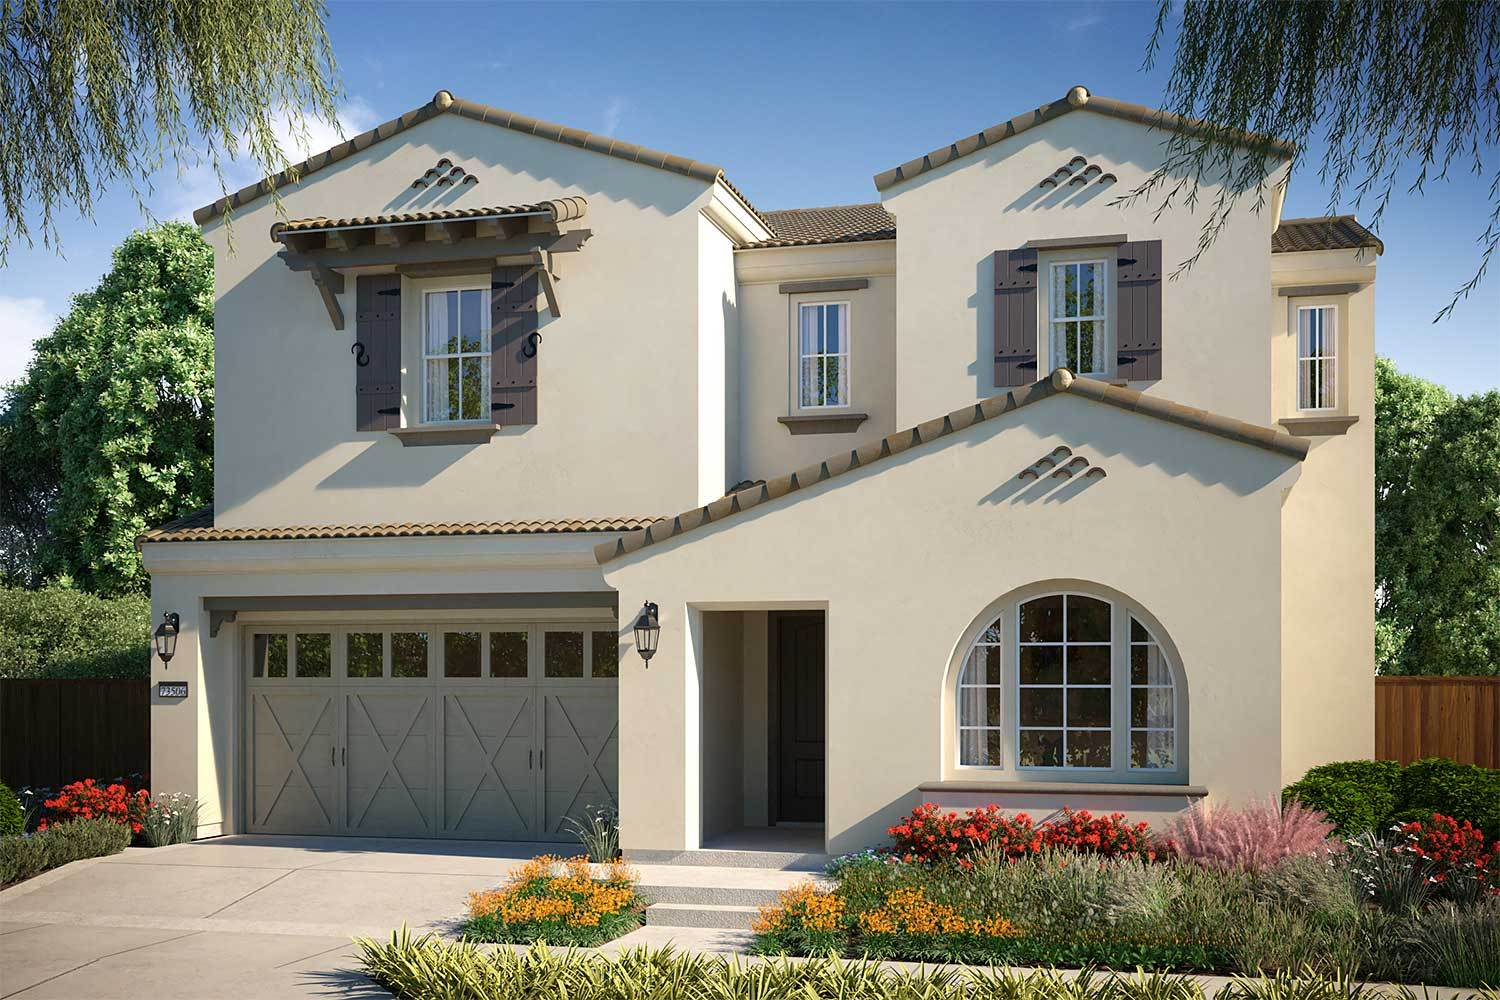 Single Family for Active at Palm - Residence 2 42419 Areca Palm Street Fremont, California 94539 United States